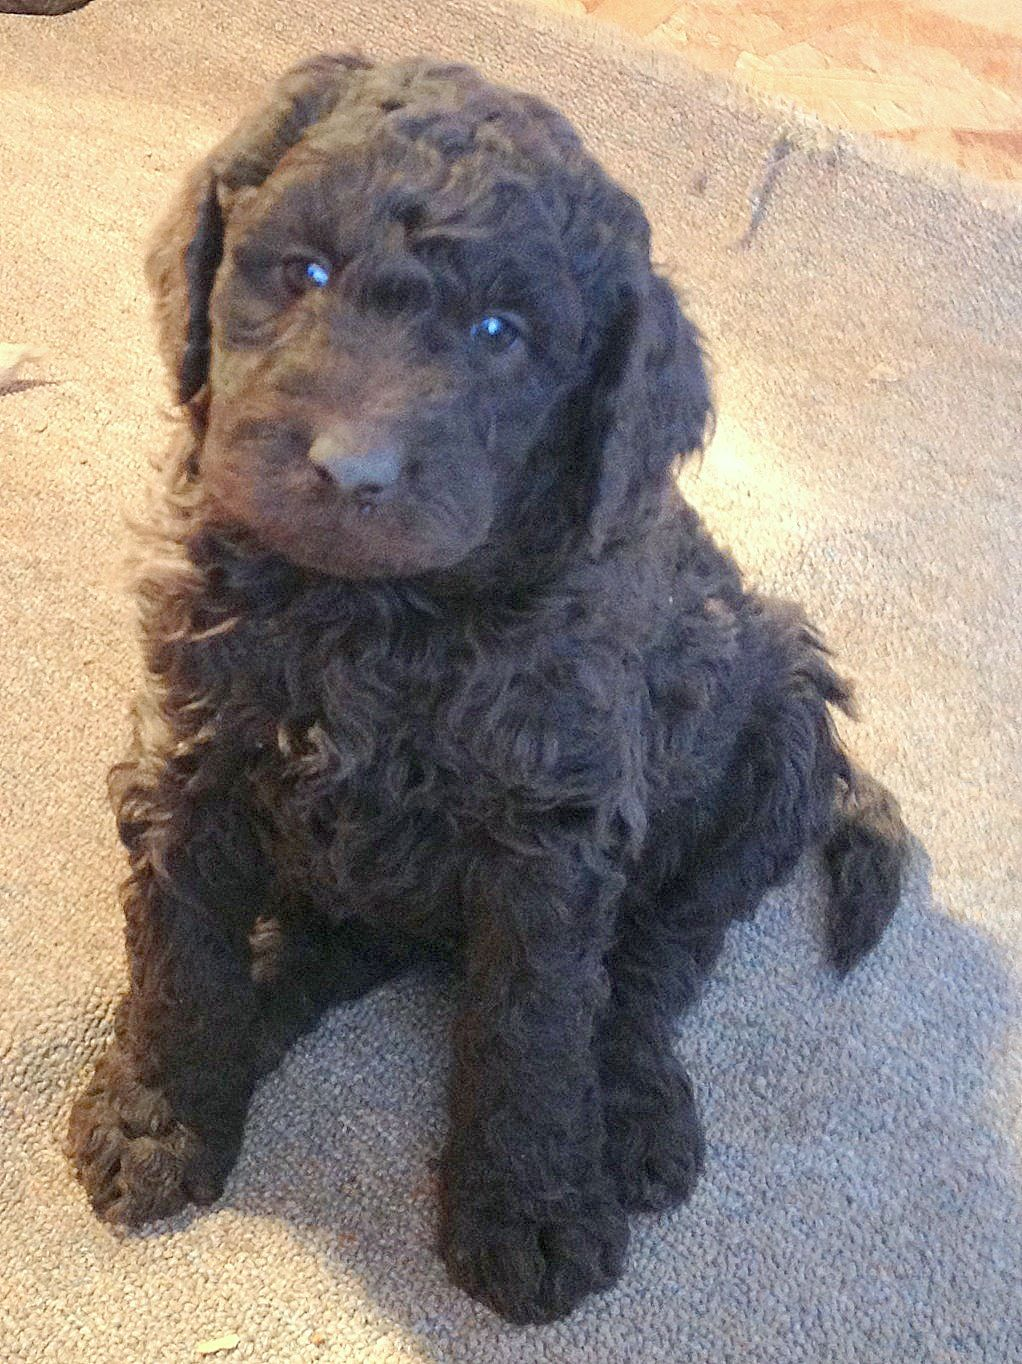 20 Newfoundland Doodle Dogs Pictures And Ideas On Weric